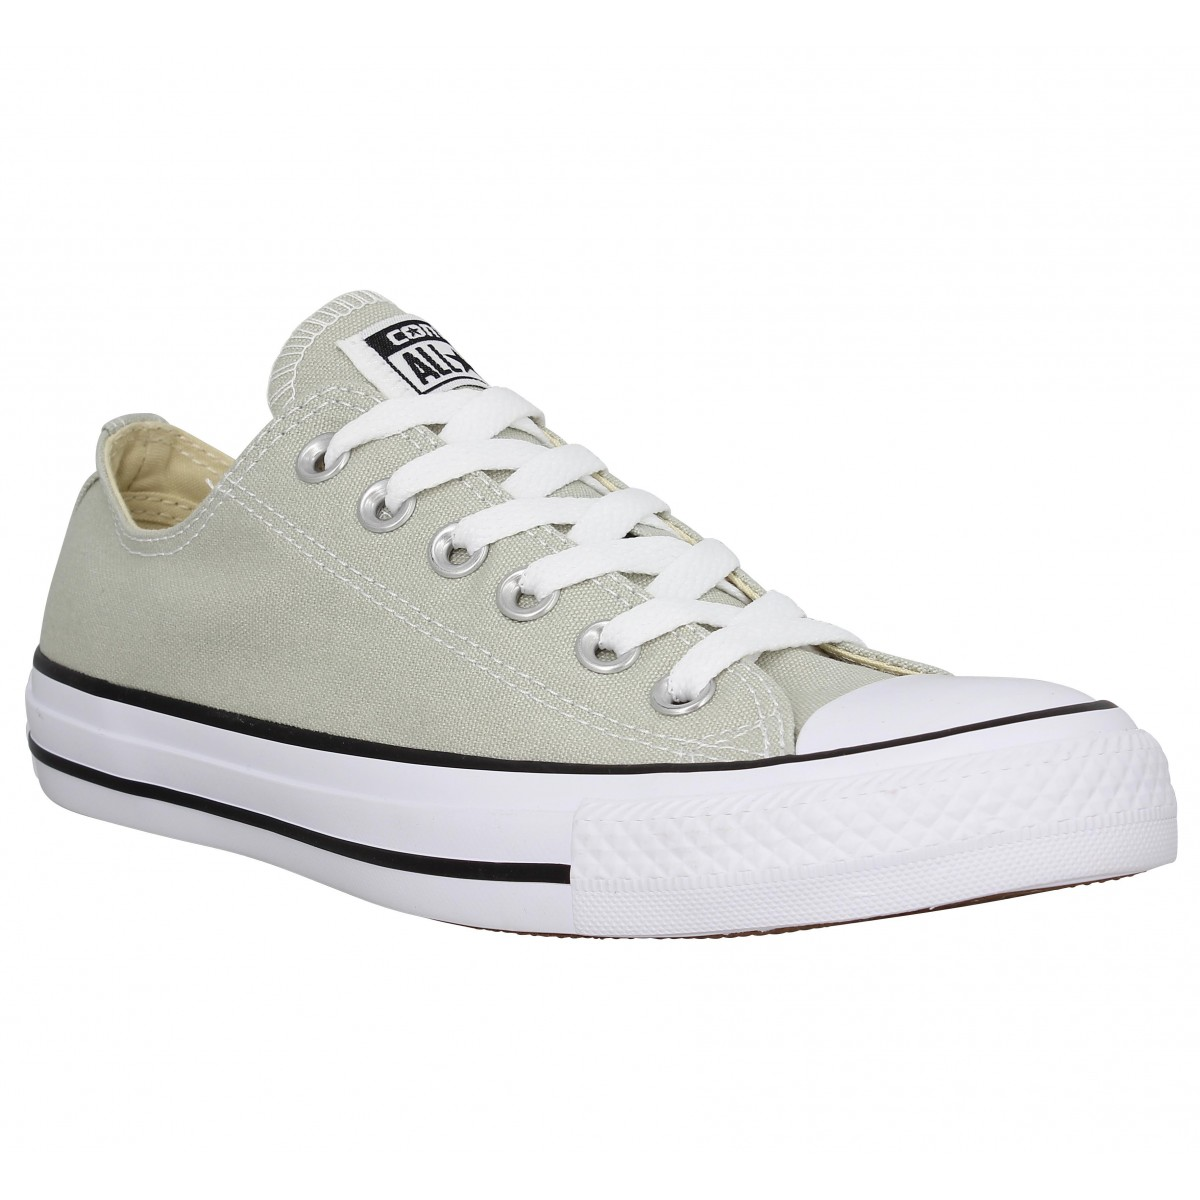 Baskets CONVERSE Chuck Taylor All Star toile Femme Light Surplus